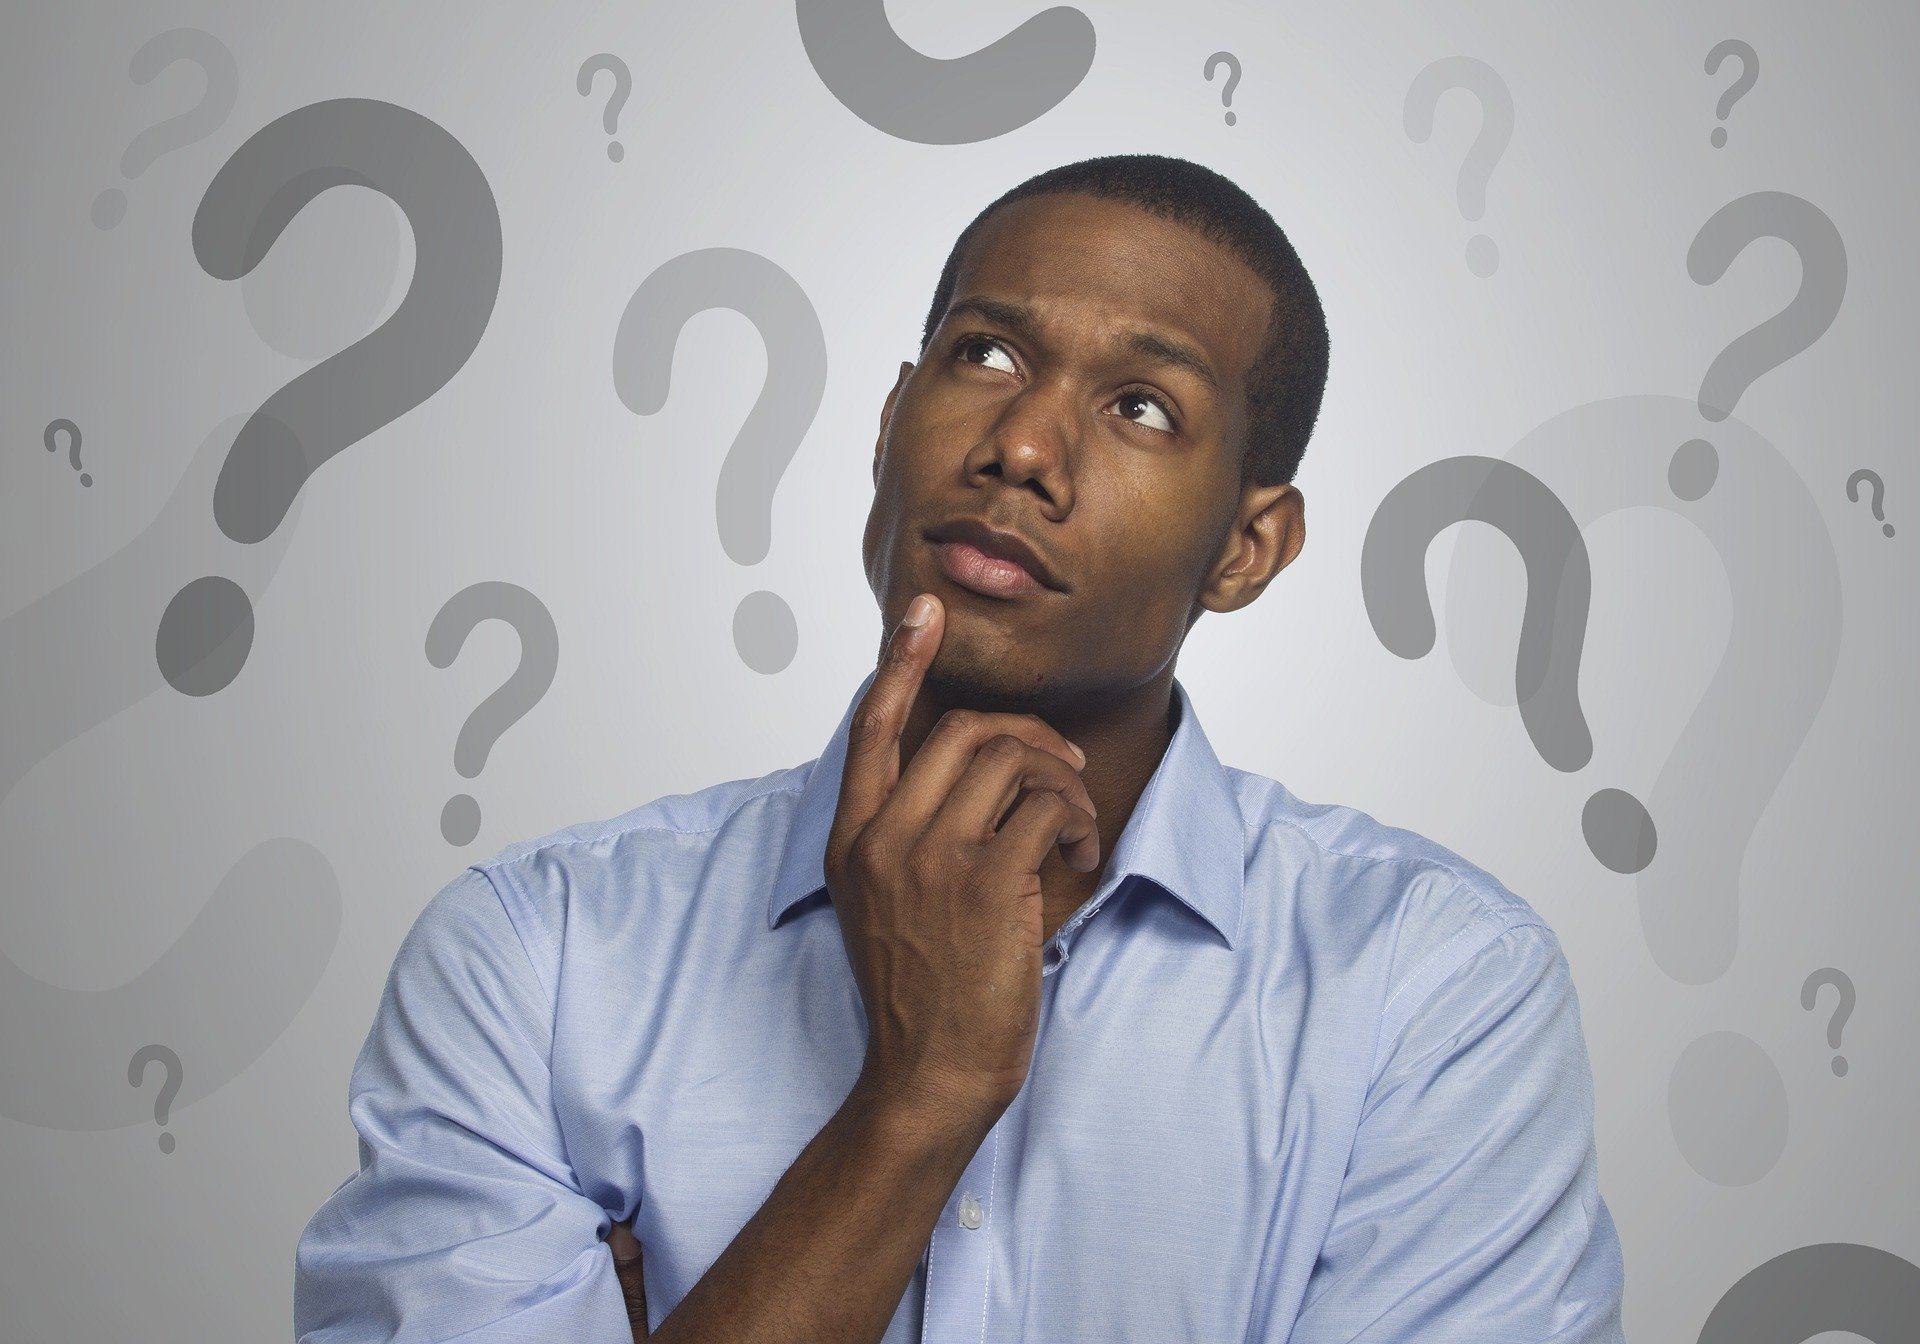 Man pointing at chin thinking, surrounded by question marks